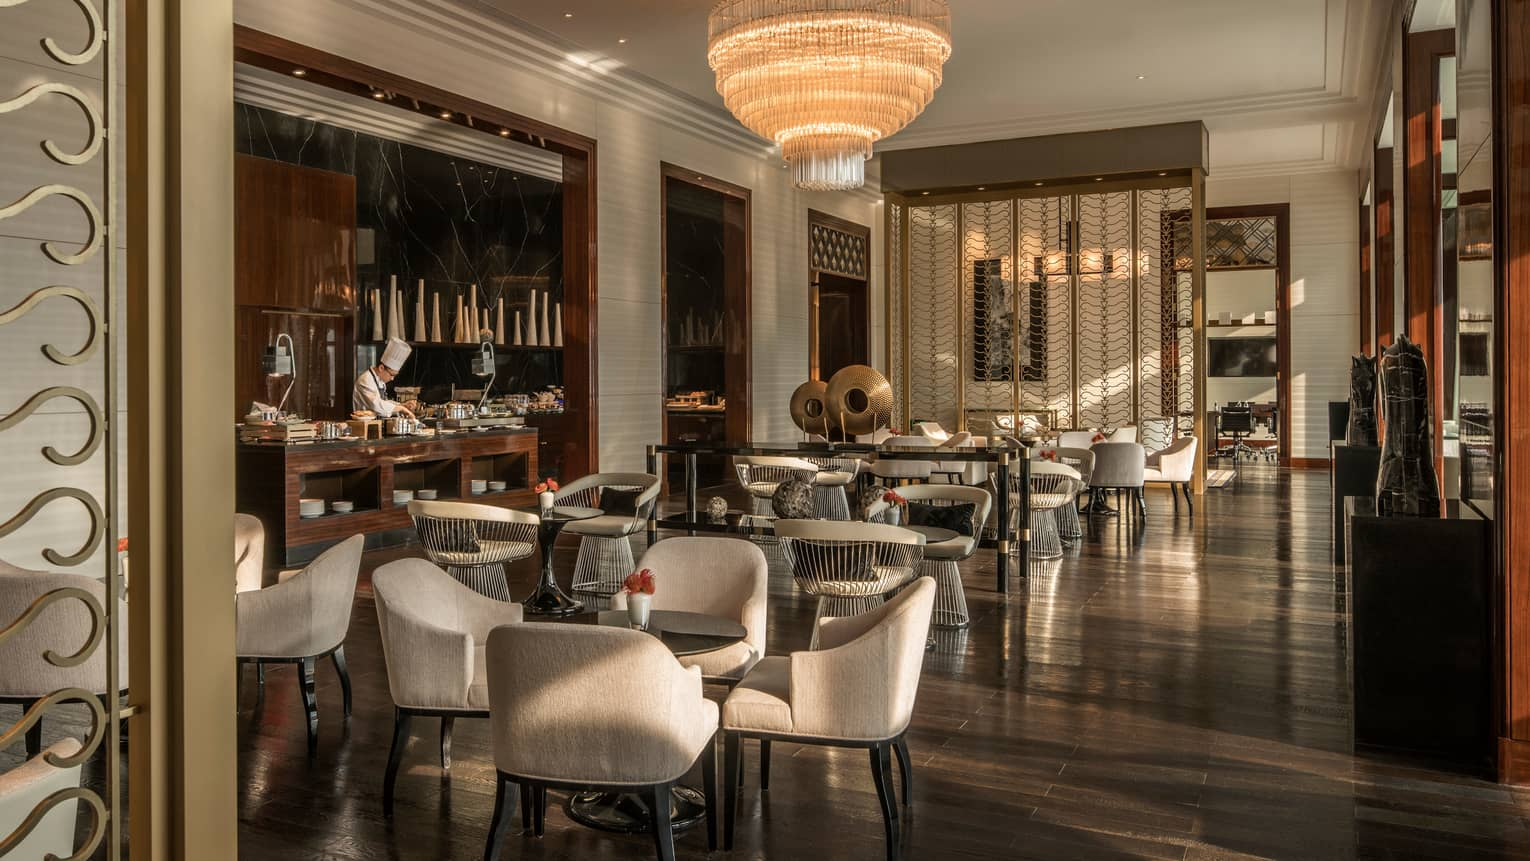 Executive Club lounge chef at bar by cocktail tables, chairs under tiered crystal chandelier